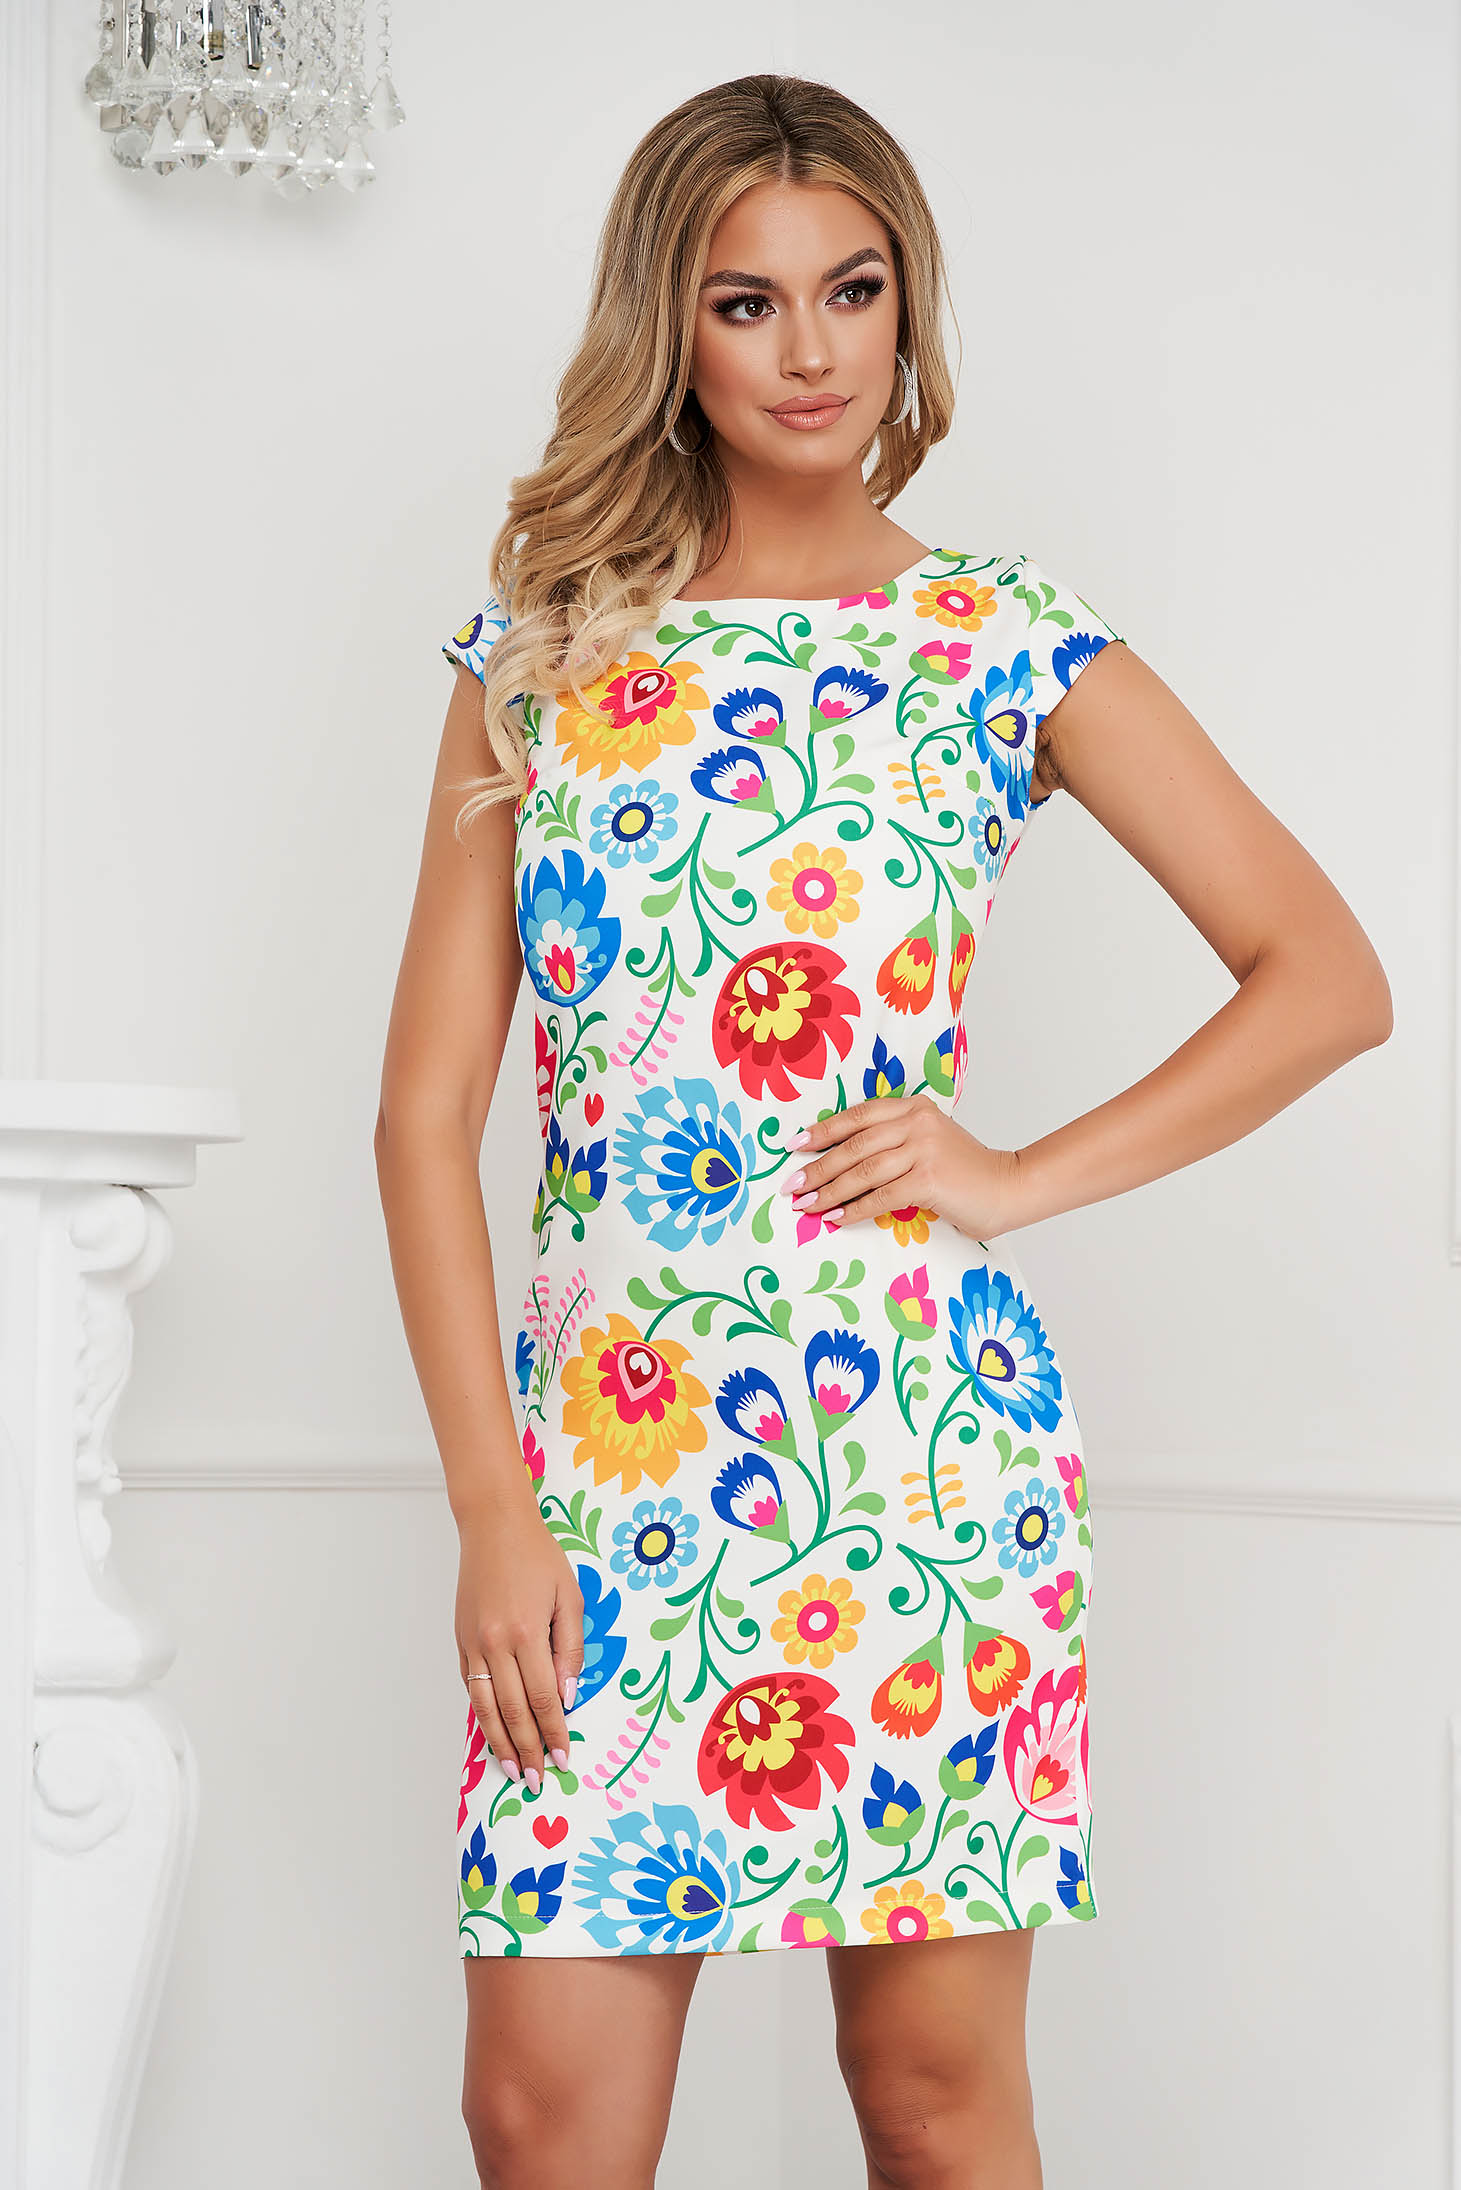 StarShinerS dress short cut straight with floral print office non-flexible thin fabric